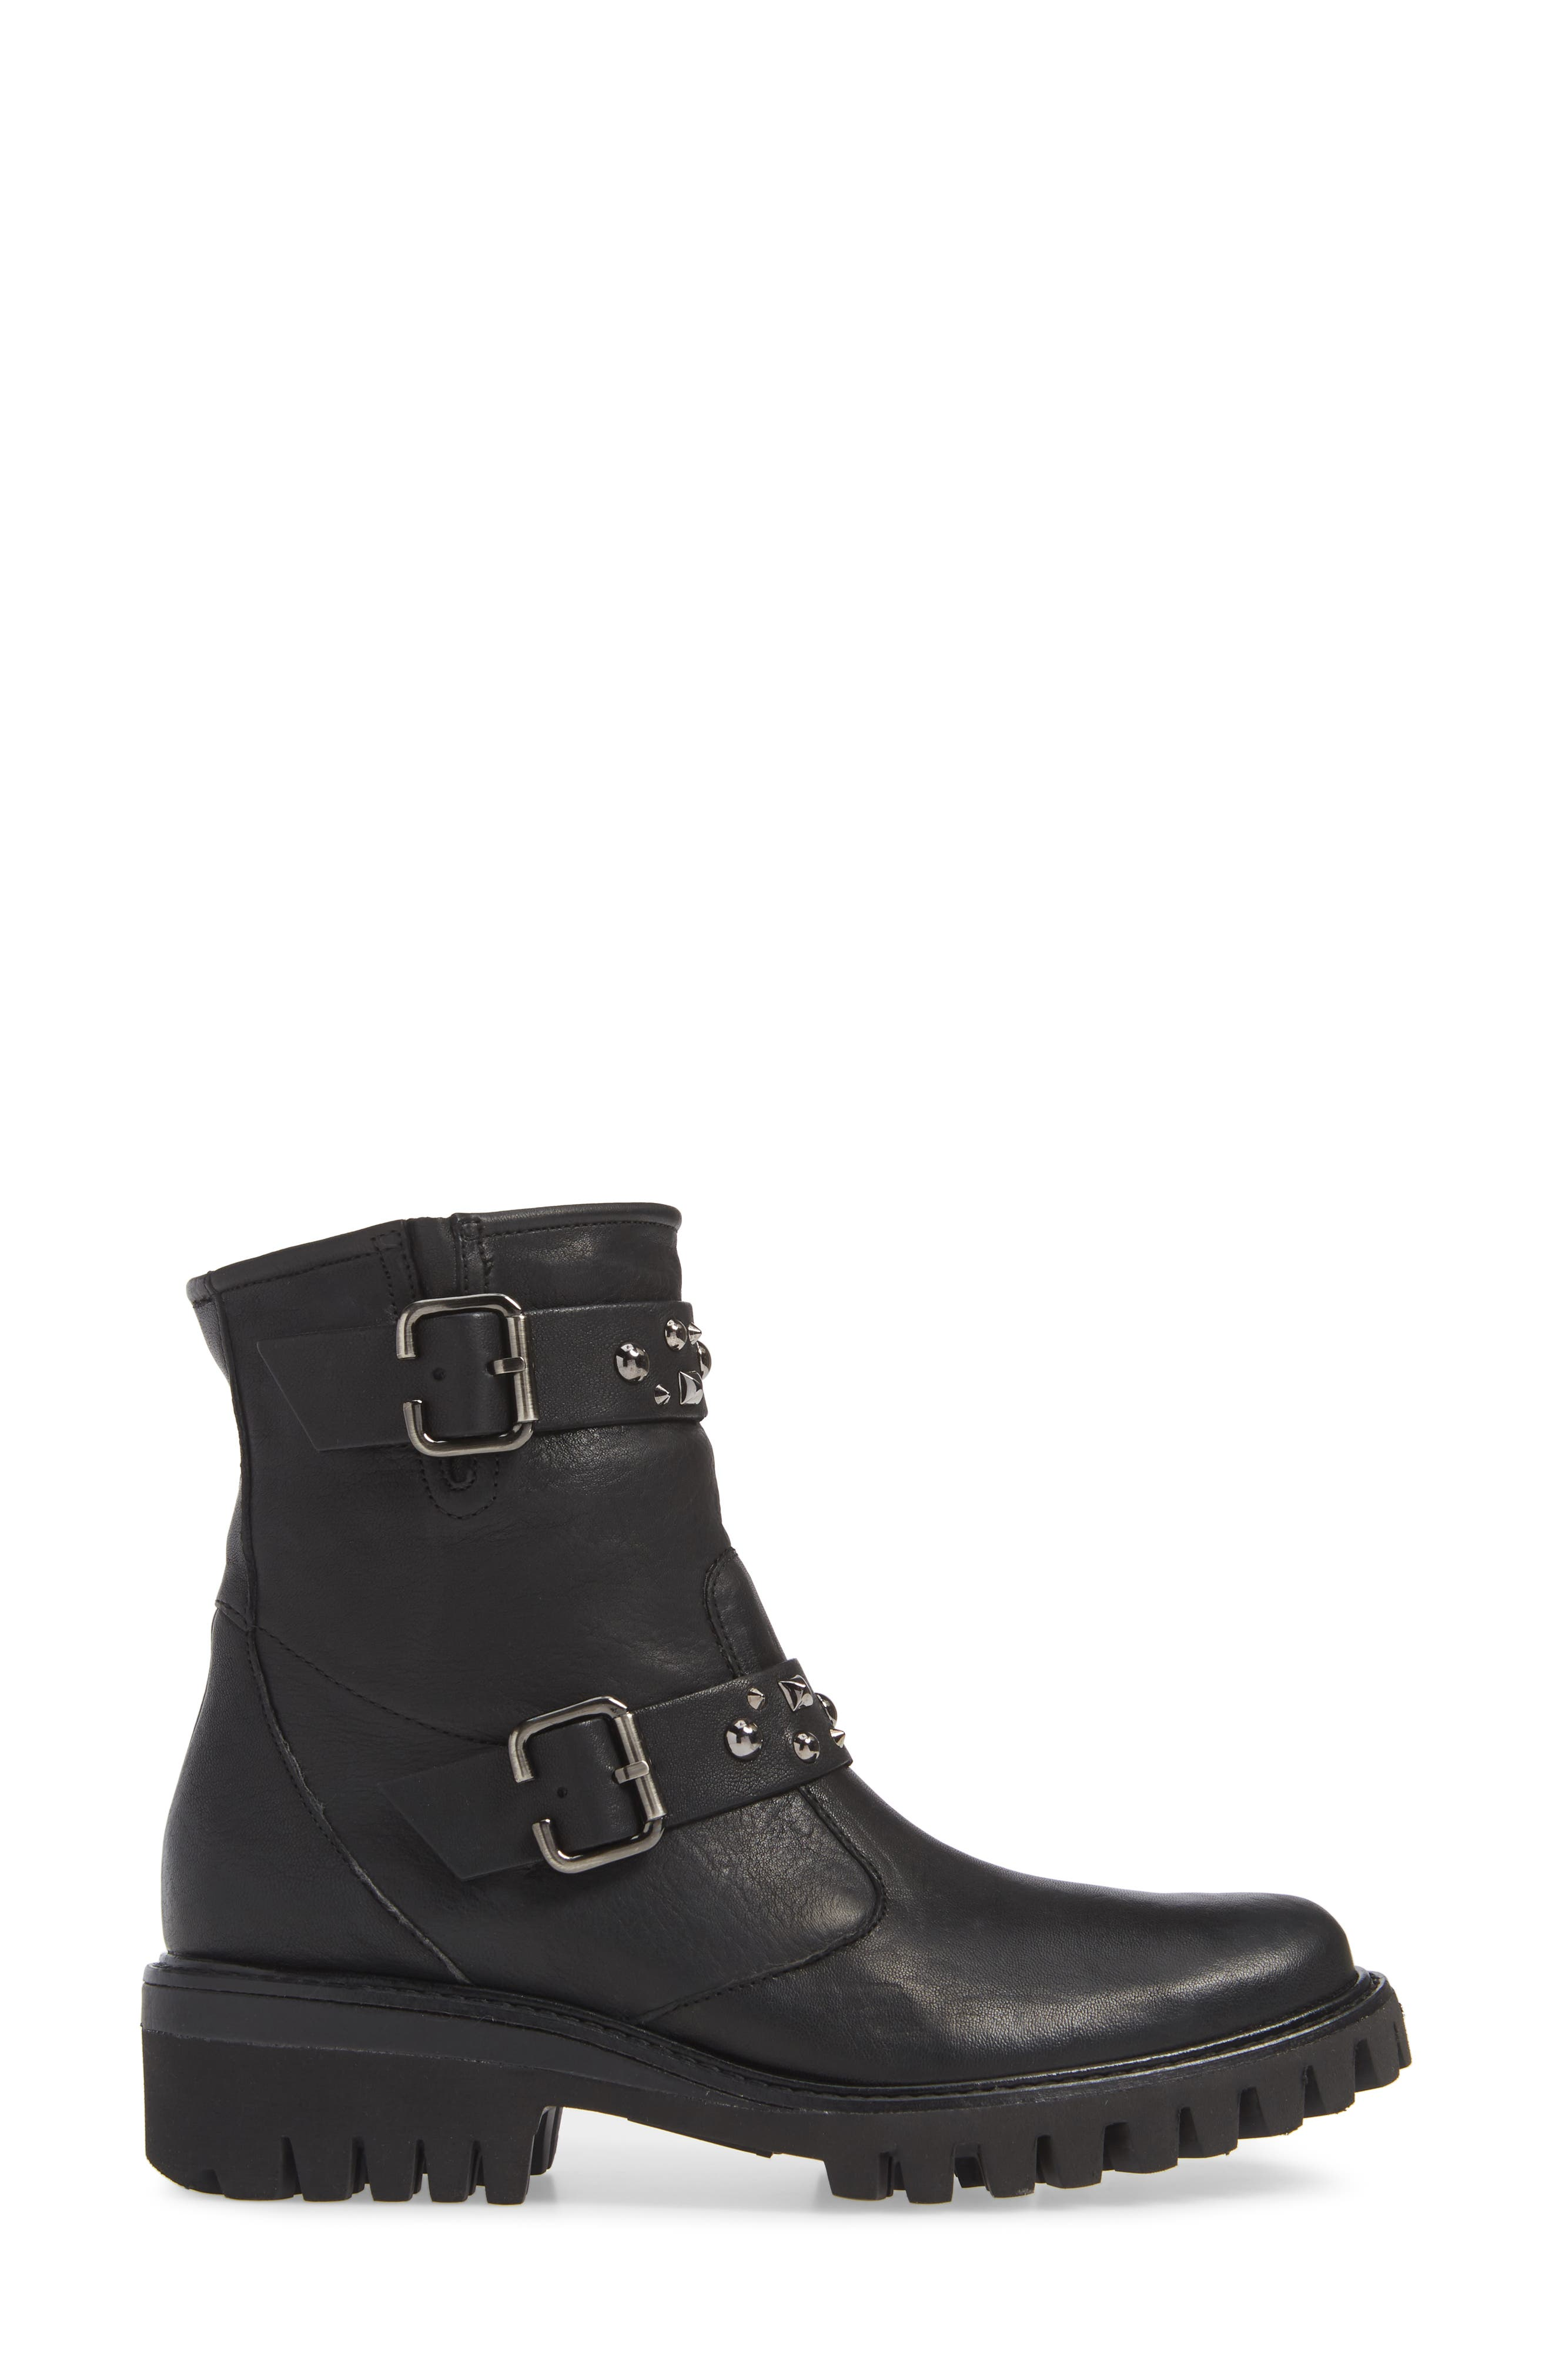 Veronia Studded Buckle Boot,                             Alternate thumbnail 3, color,                             BLACK LEATHER